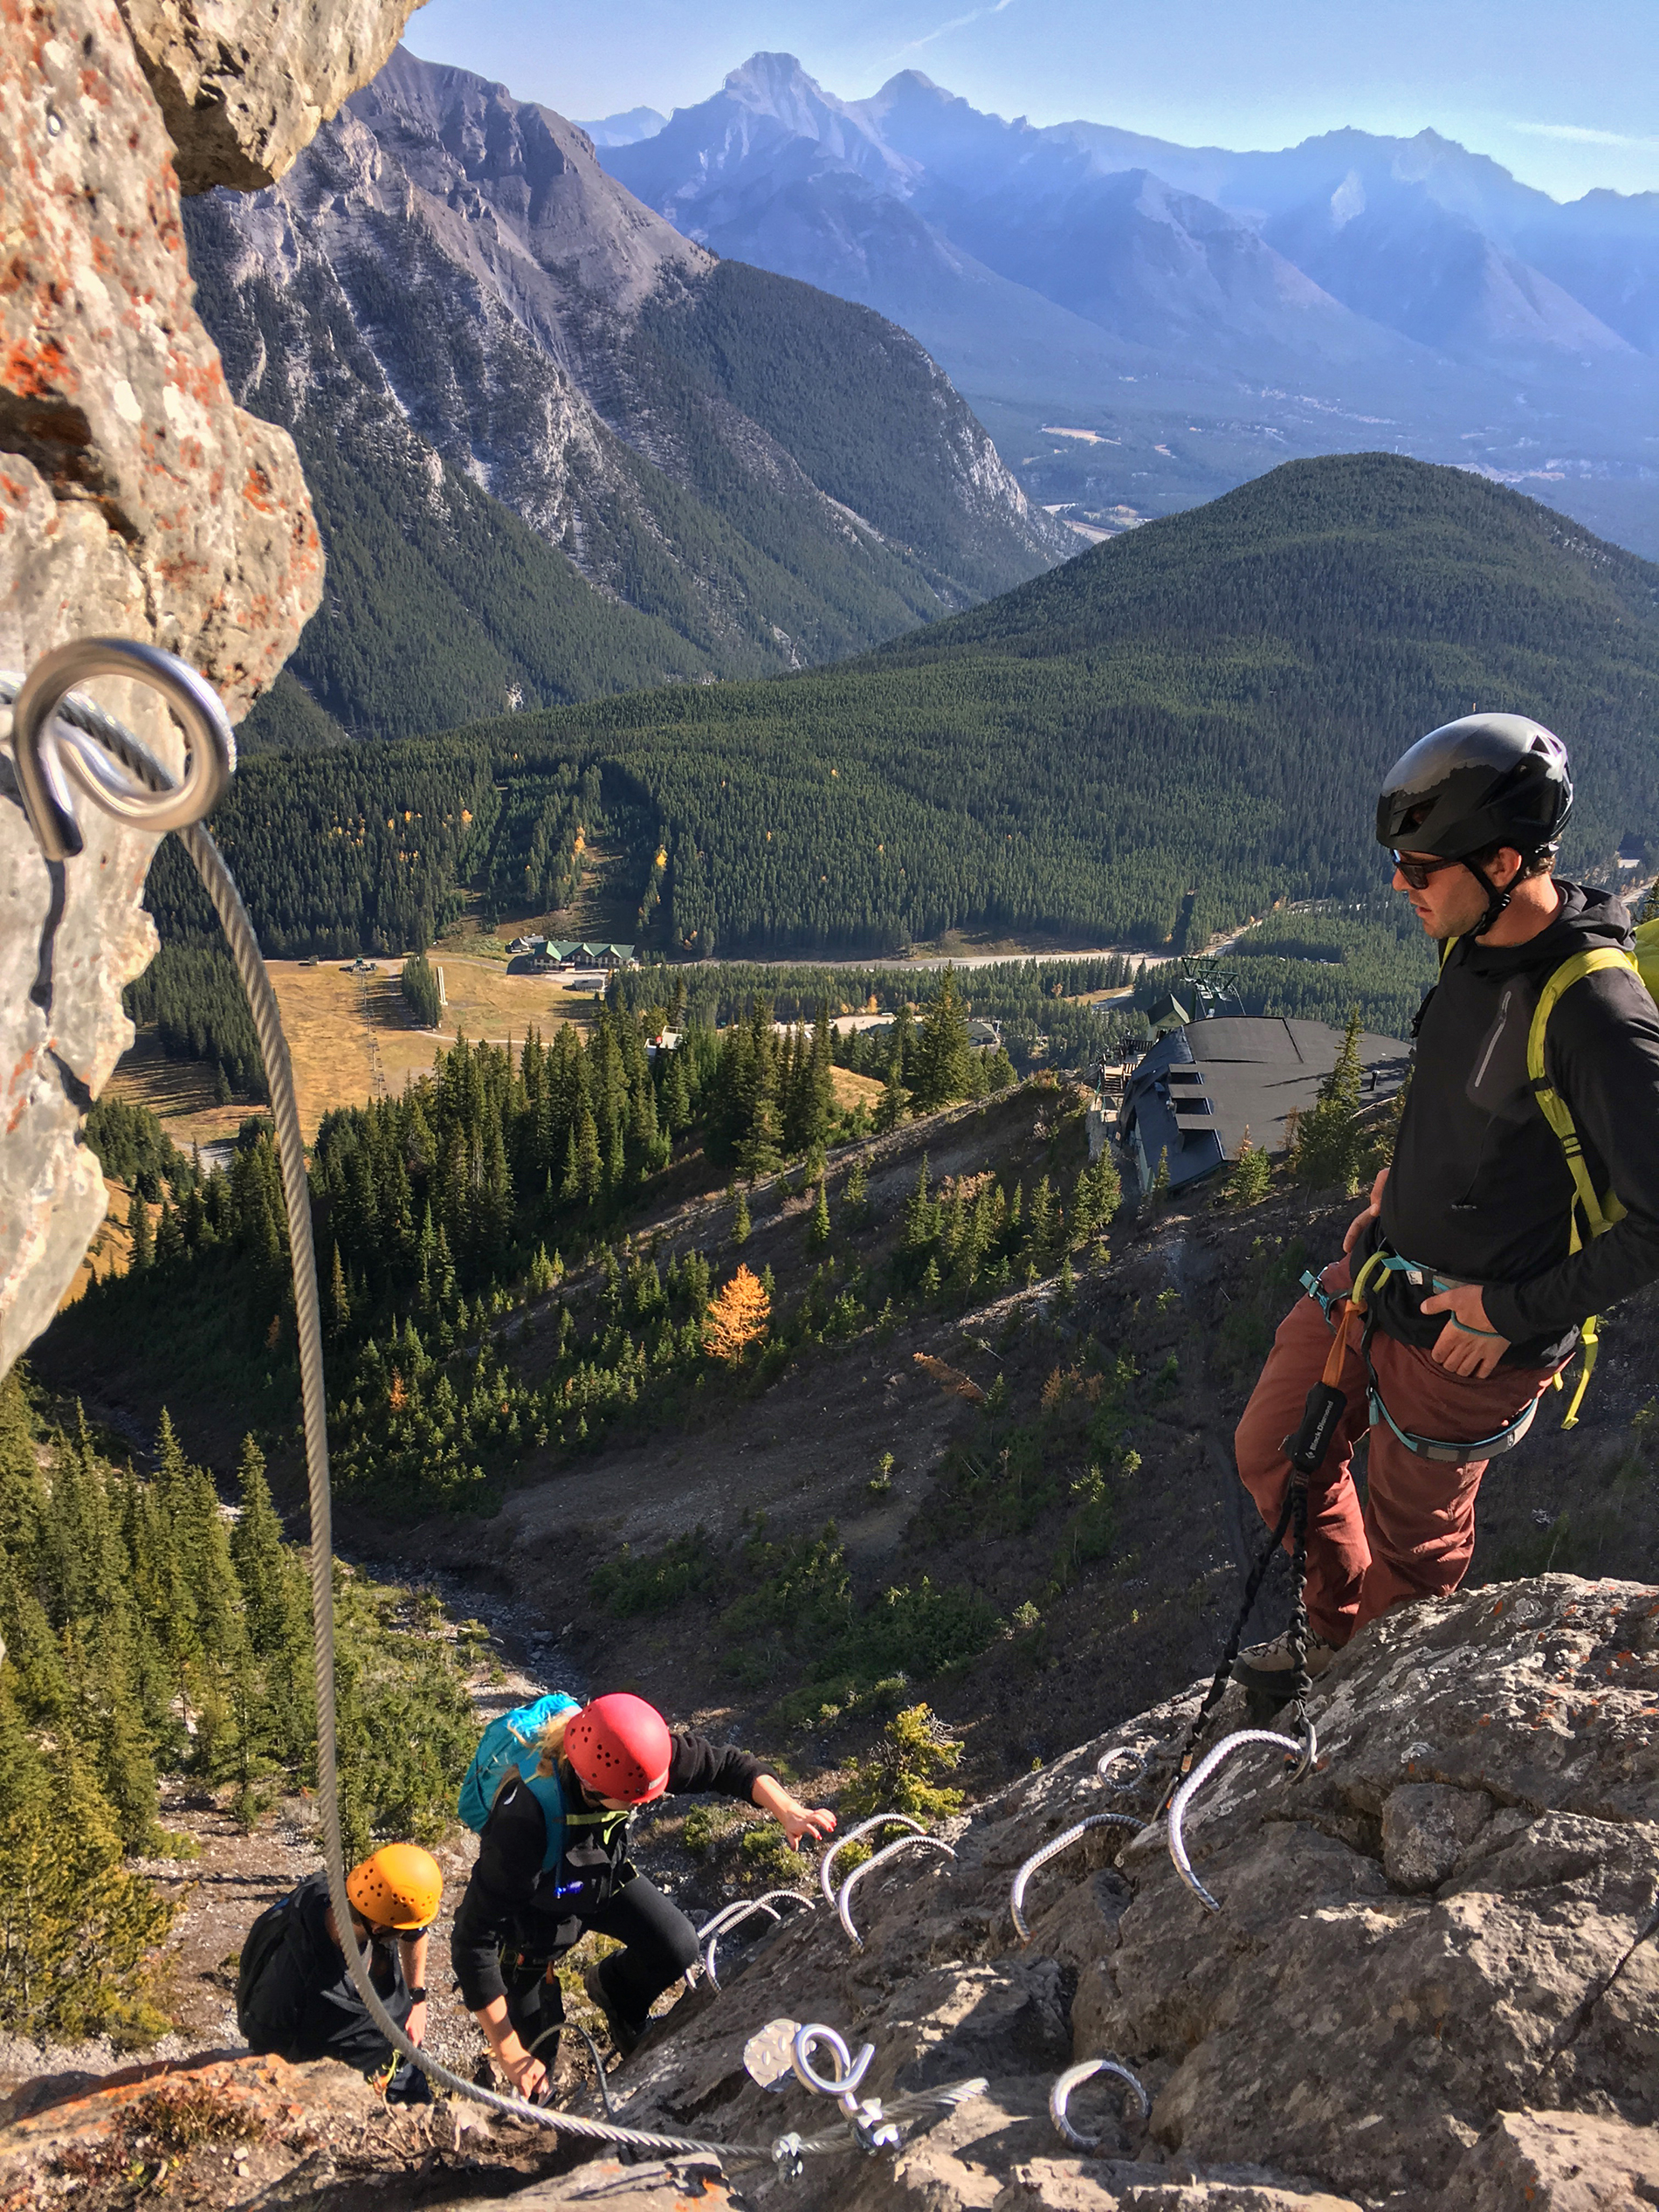 Having a blast climbing the Via Ferrata in Banff National Park.